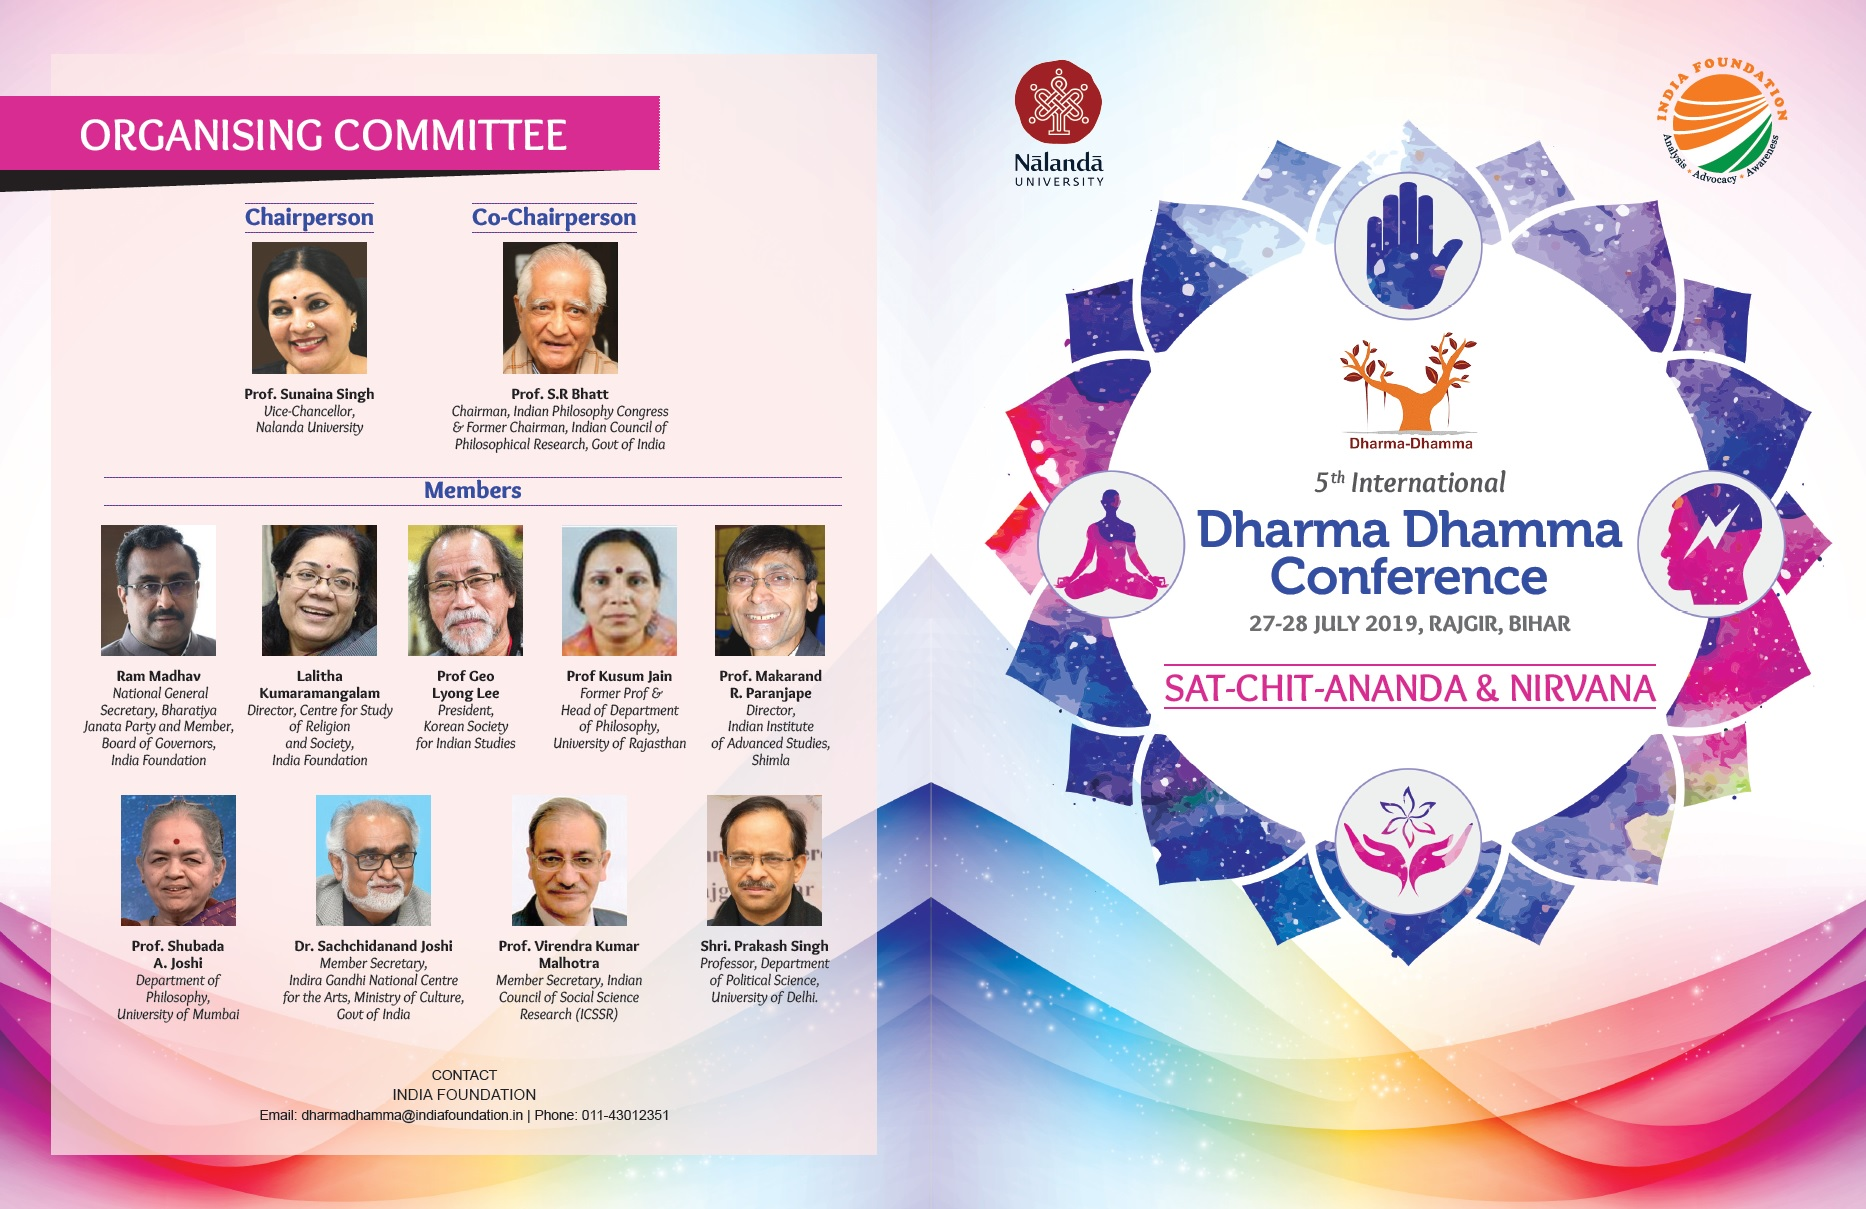 5th International  Dharma Dhamma Conference